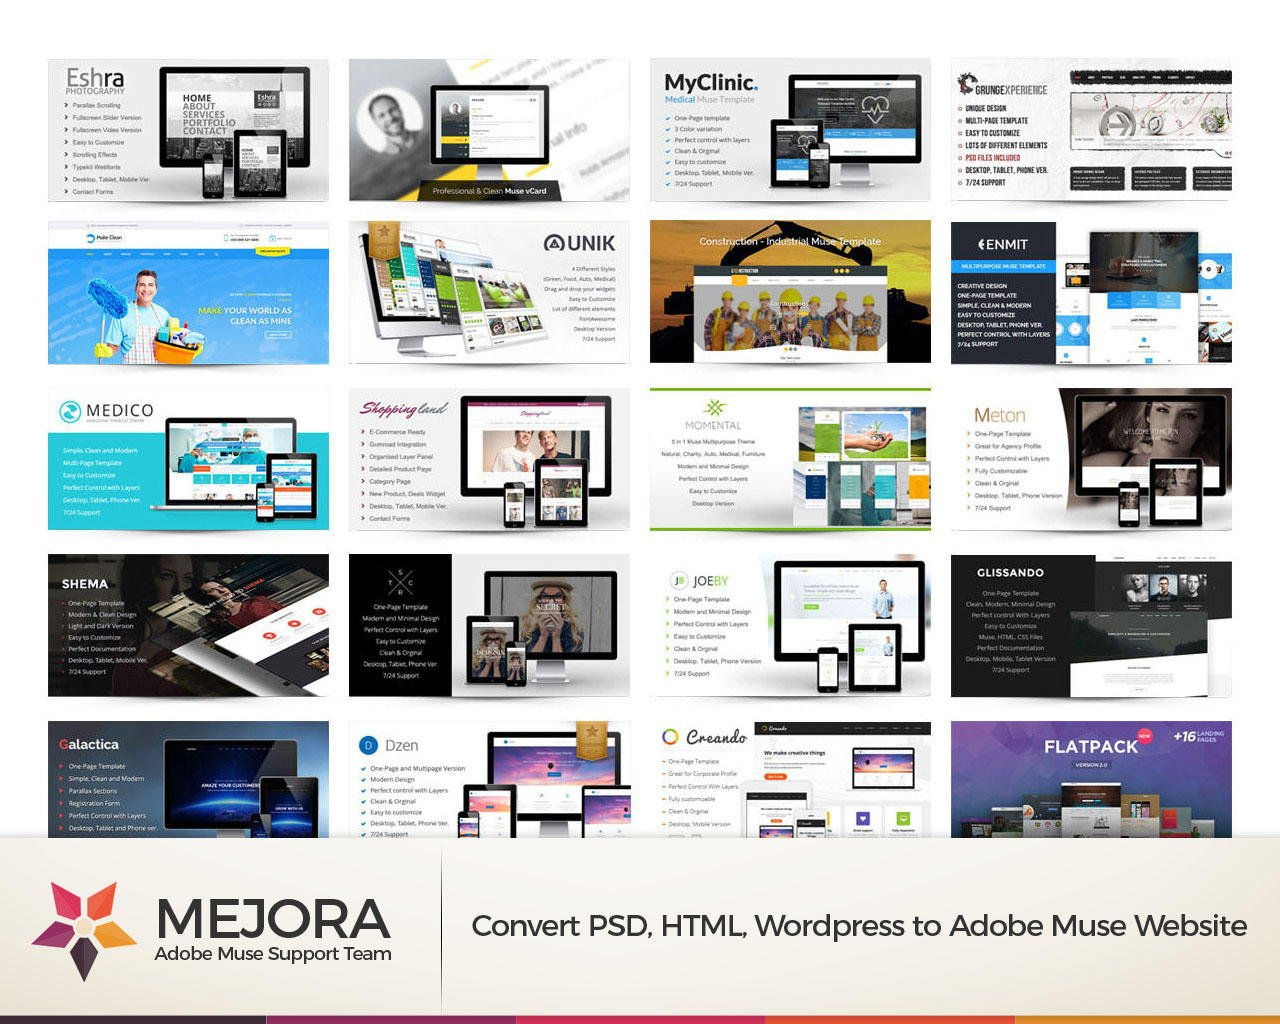 Convert PSD, HTML, Wordpress to Adobe Muse Website by Mejora - 109470